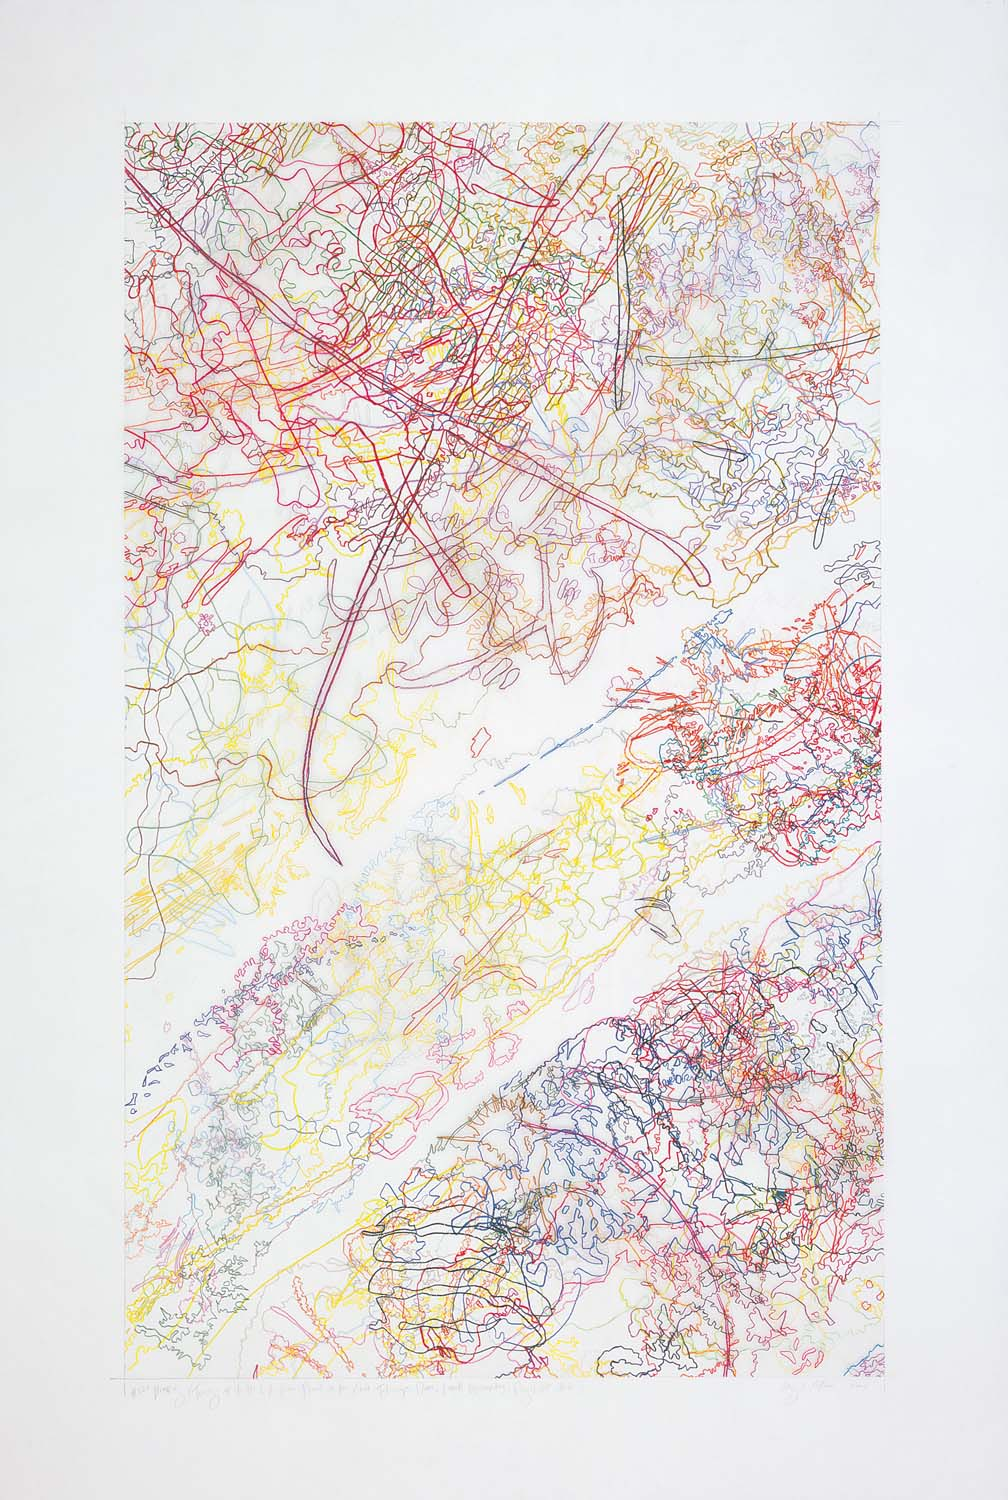 #229 Drawing (Tracings up to the L.A. River placed in the Clark Telescope Dome, Lowell Observatory, Flagstaff, AZ)